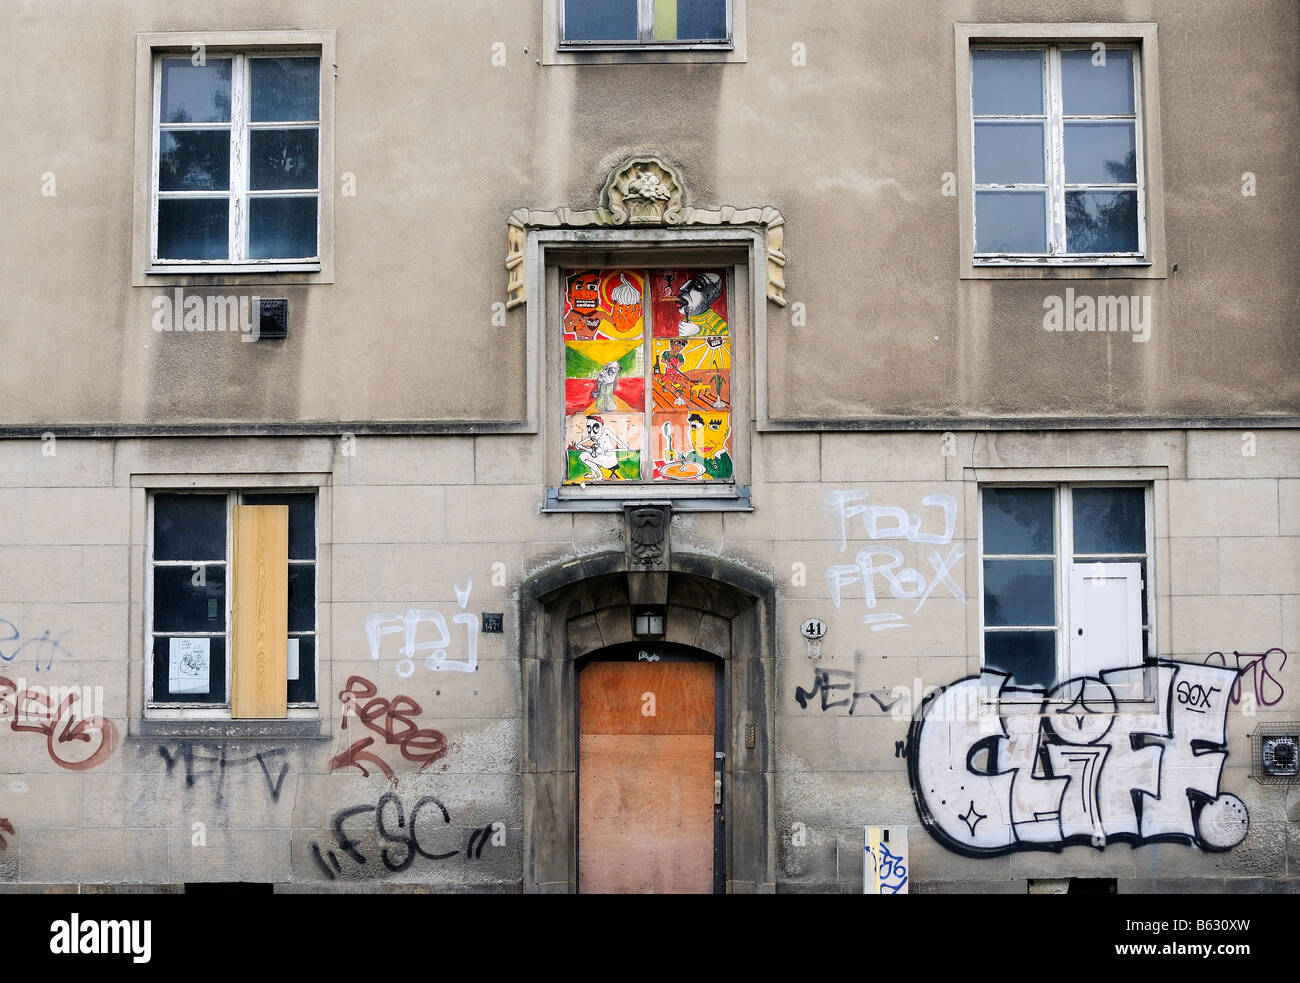 Perfect Graffiti Stockbild